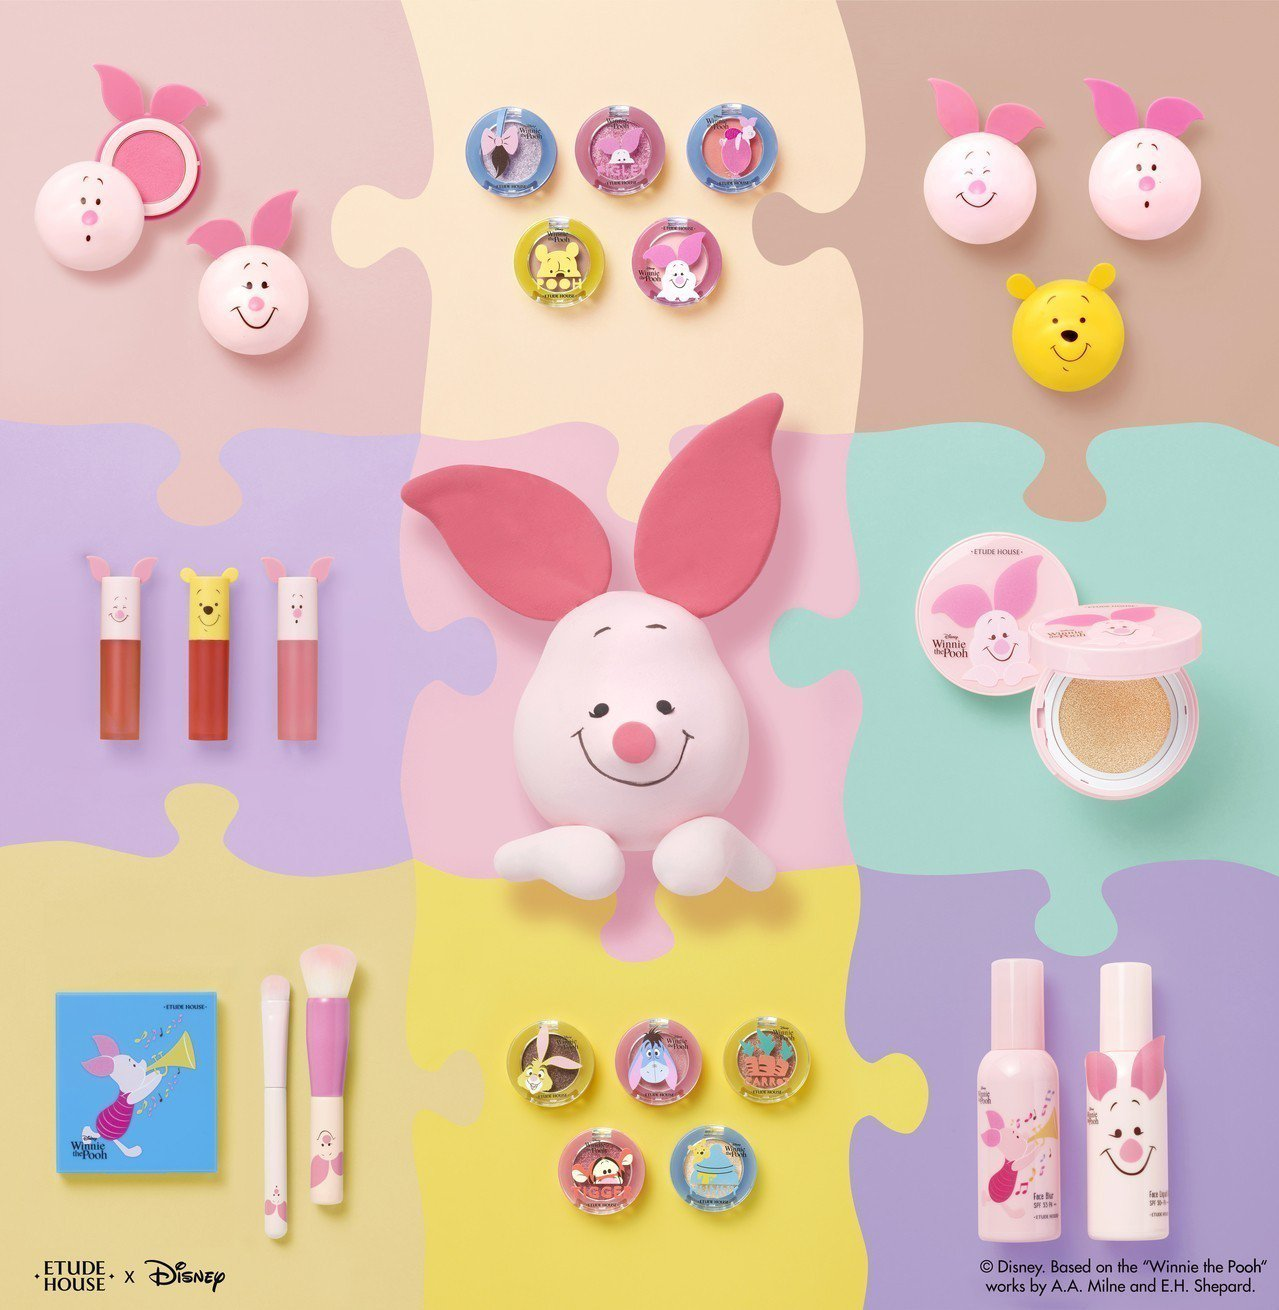 Happy With Piglet幸福每一天系列。 ETUDE HOUSE/提供